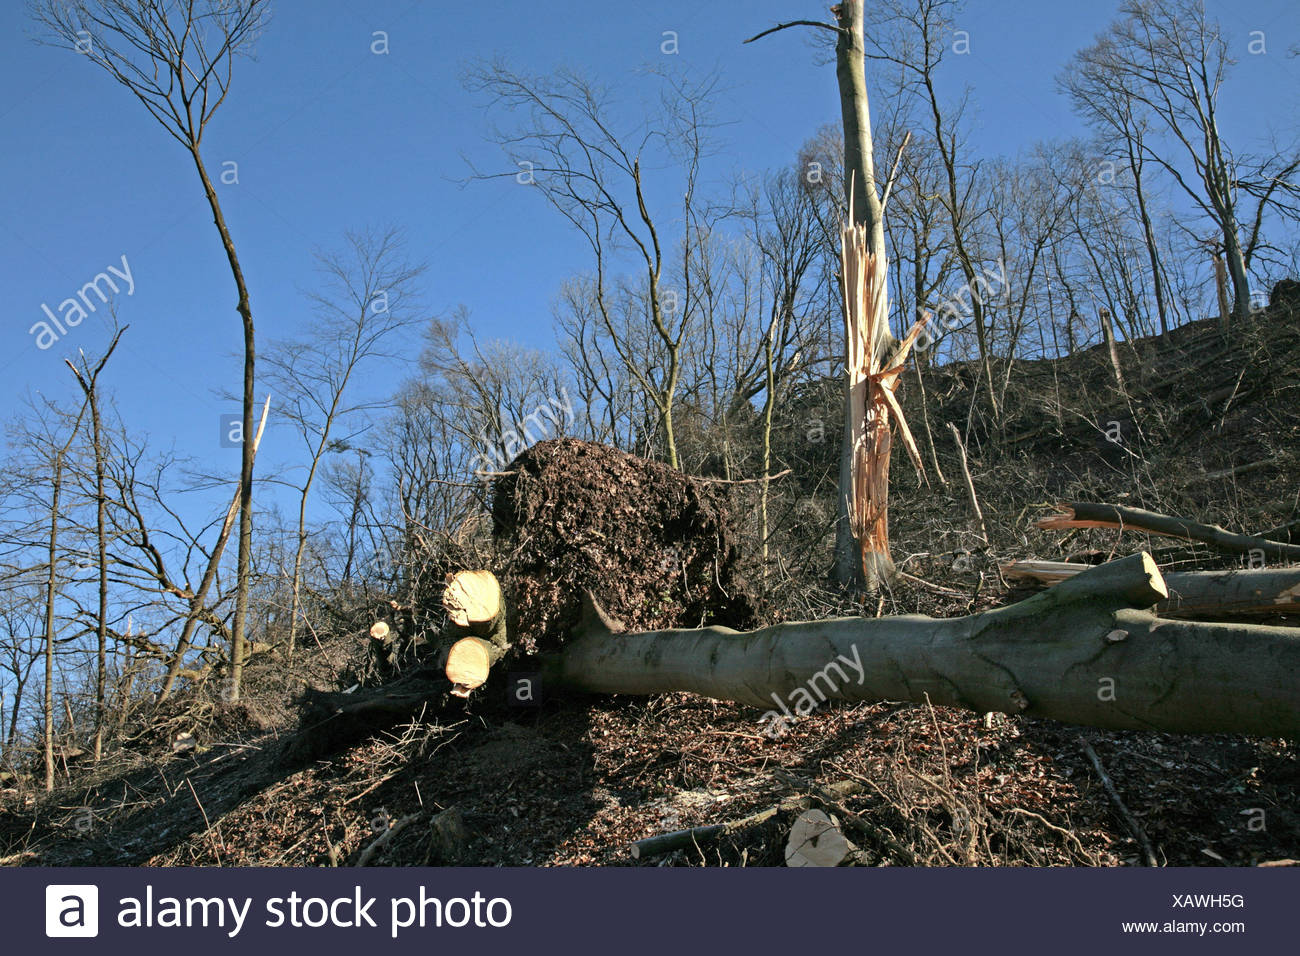 Germany, Bavaria, Landshut, barrack mountain, attack damages, Upper Bavaria, wood, trunks, twigs, branches, lie, fall down uncompletedly, uproot, cyclone, wind rupture, destruction, climate changes, greenhouse effect, weather caprioles, disaster, natural disaster, - Stock Image